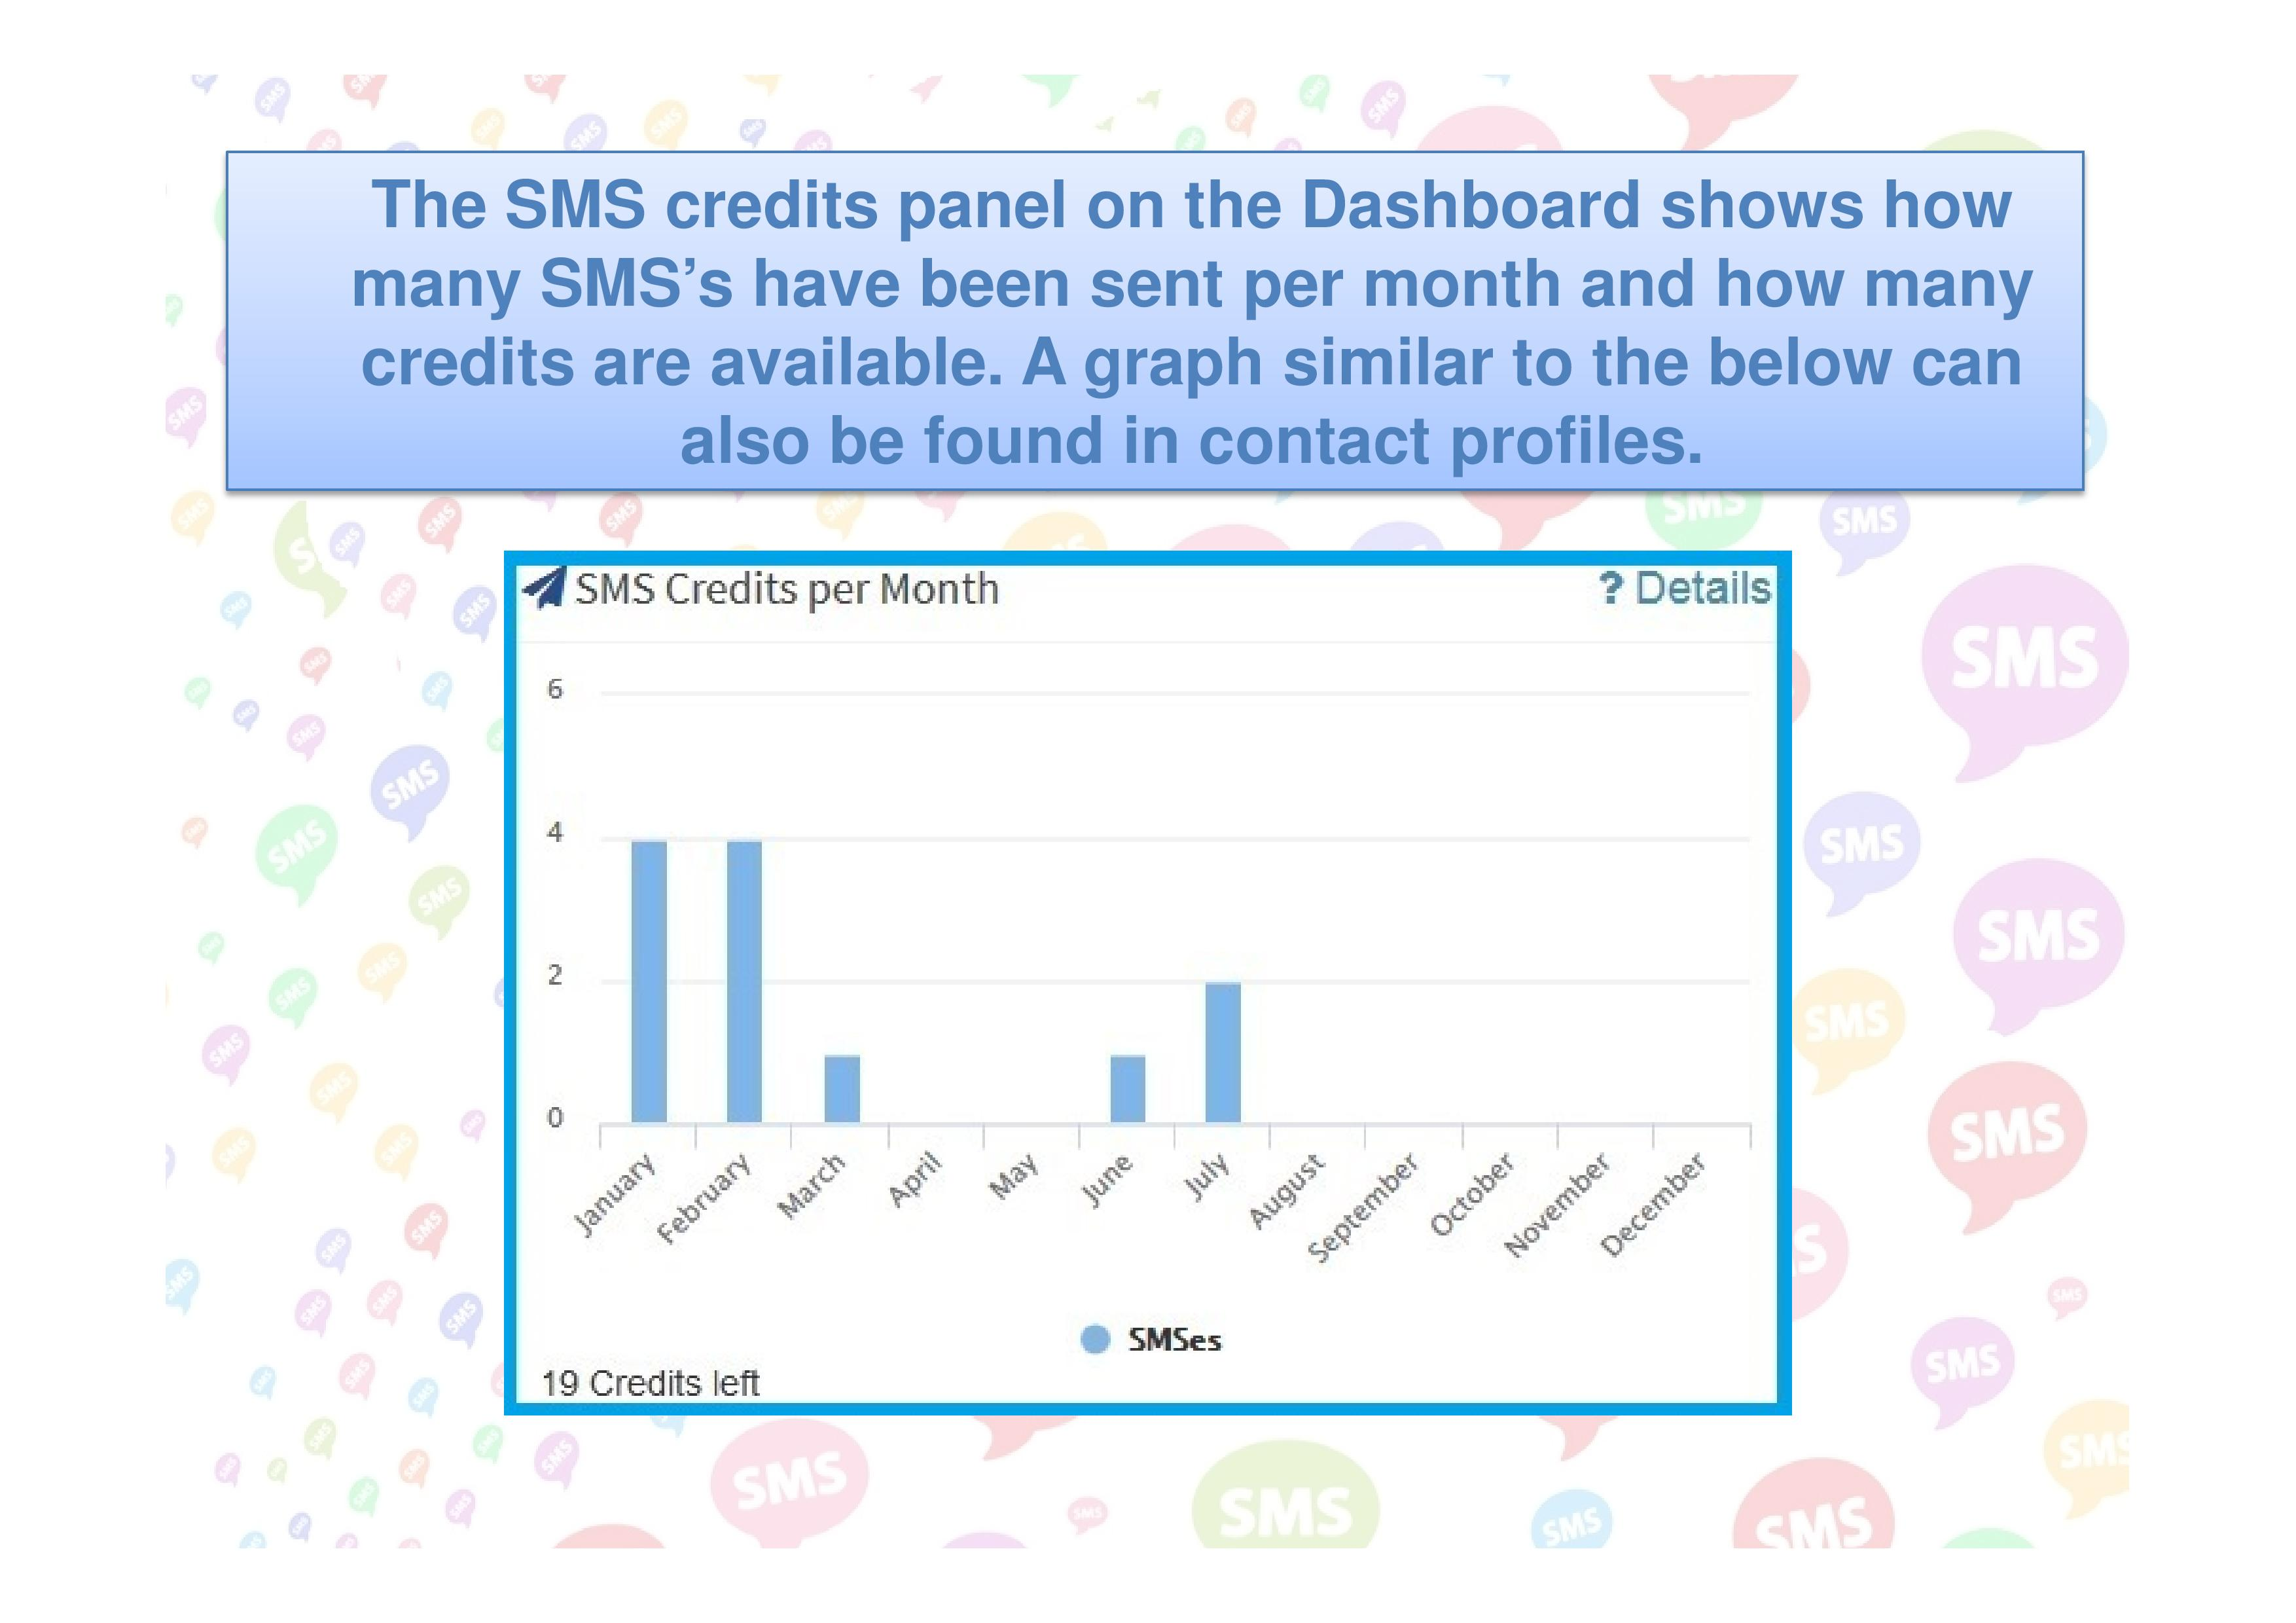 A bar graph shows a summary of SMSs sent during the year on the Dasboard.